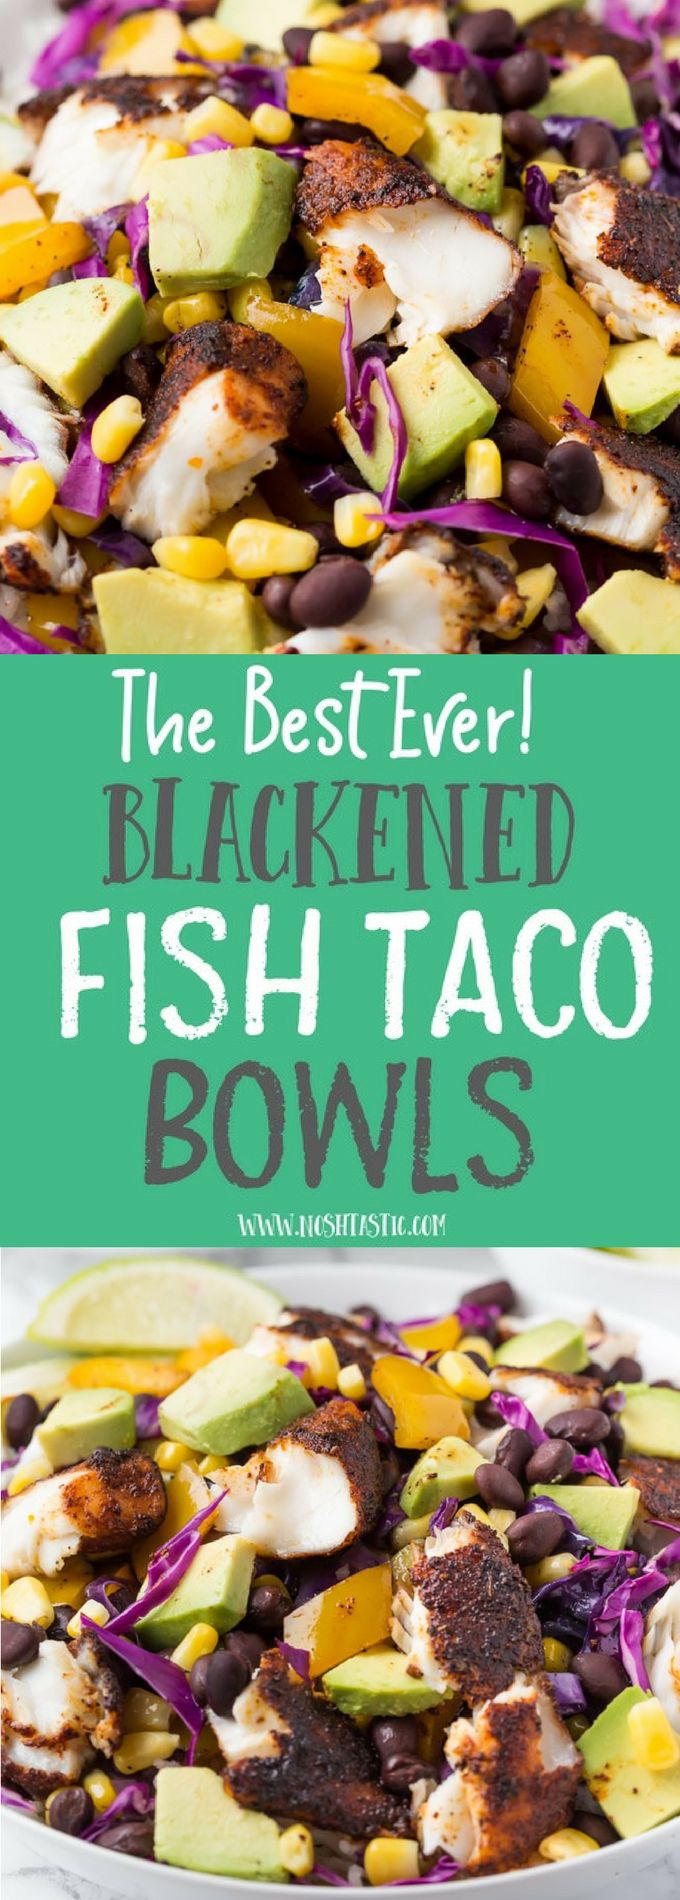 Healthy fresh gluten free blackened Fish Taco Bowls recipe! With made from scratch blackening spices. Cook it in minutes and serve over rice with generous helpings of Avocado, Black Beans and fresh ve